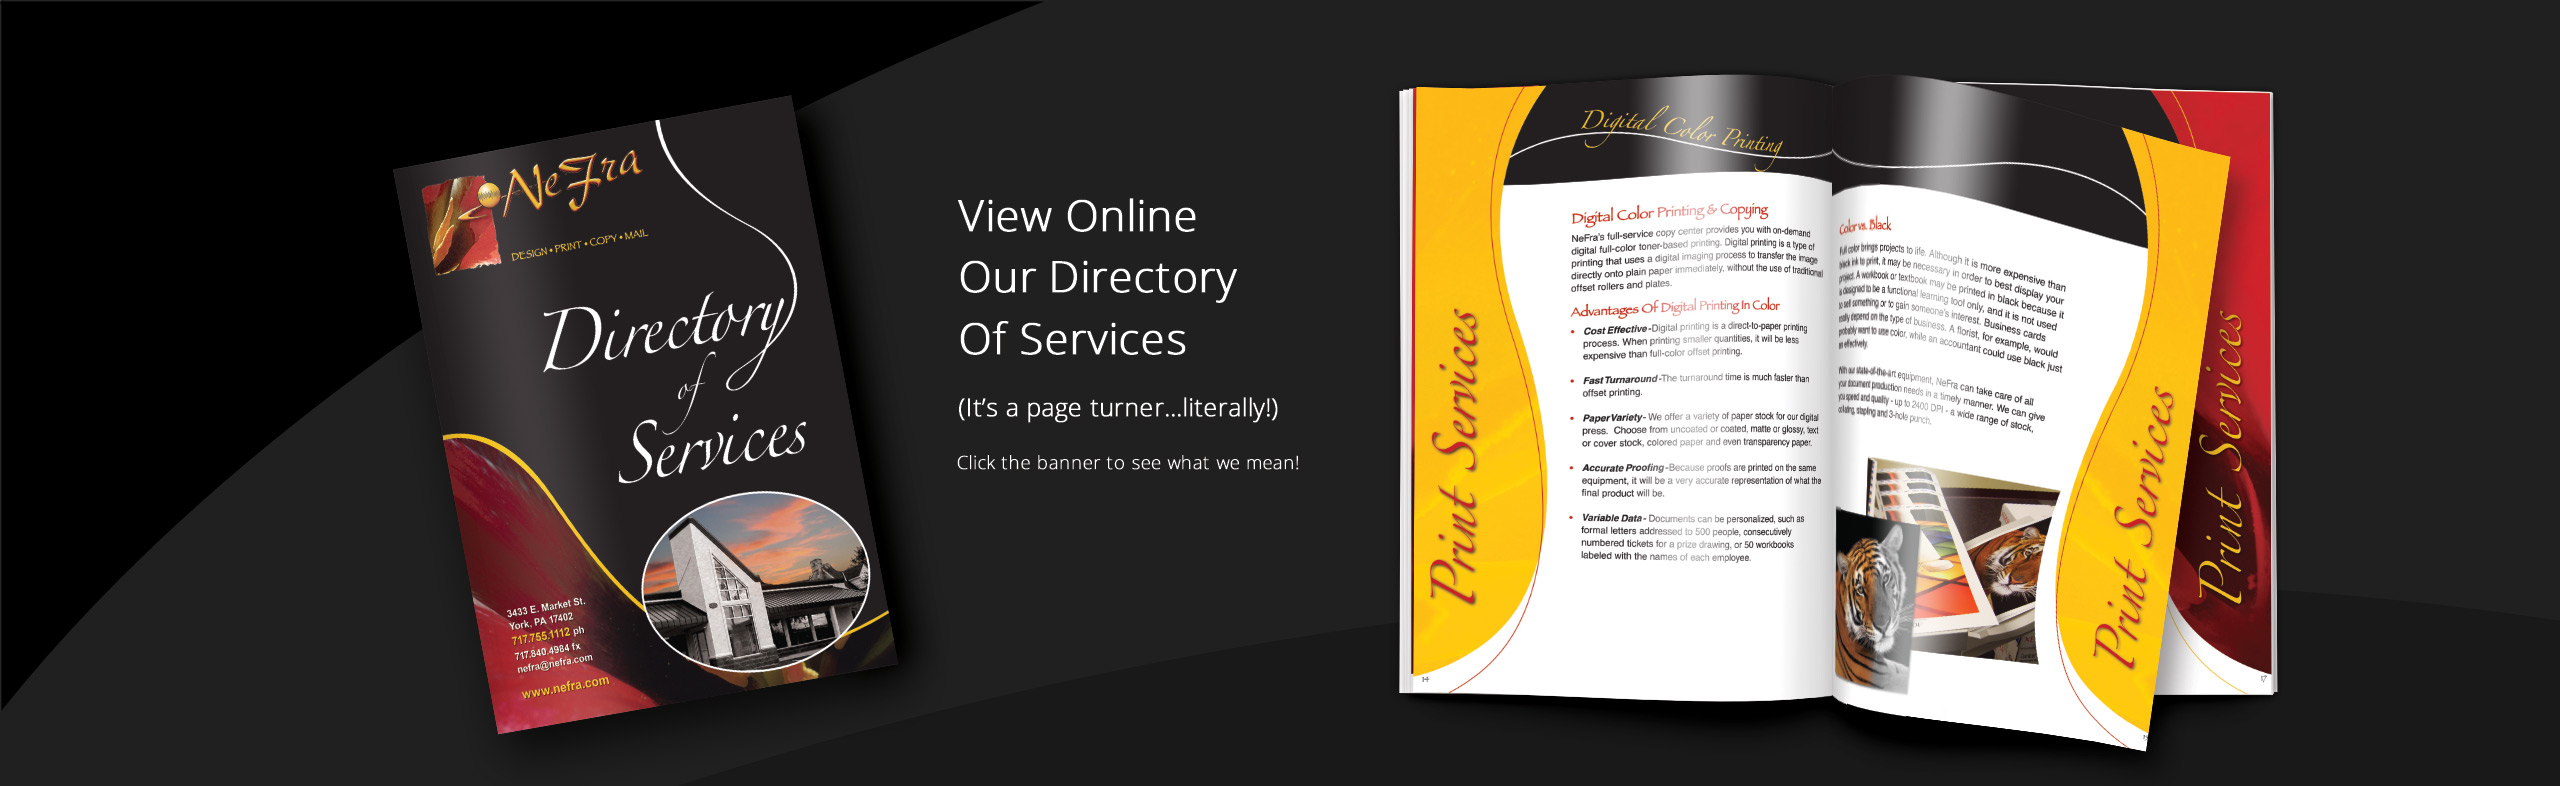 Banner_DirectoryOfServices3